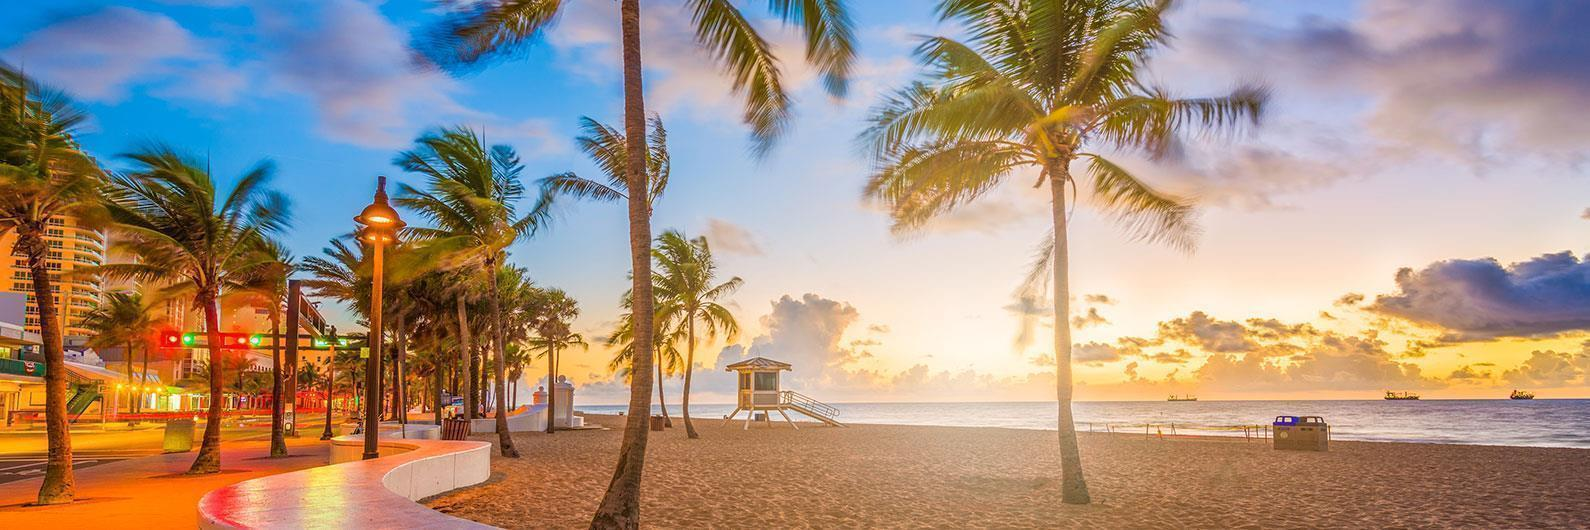 Cheap Flights from Trenton to Fort Lauderdale | Frontier